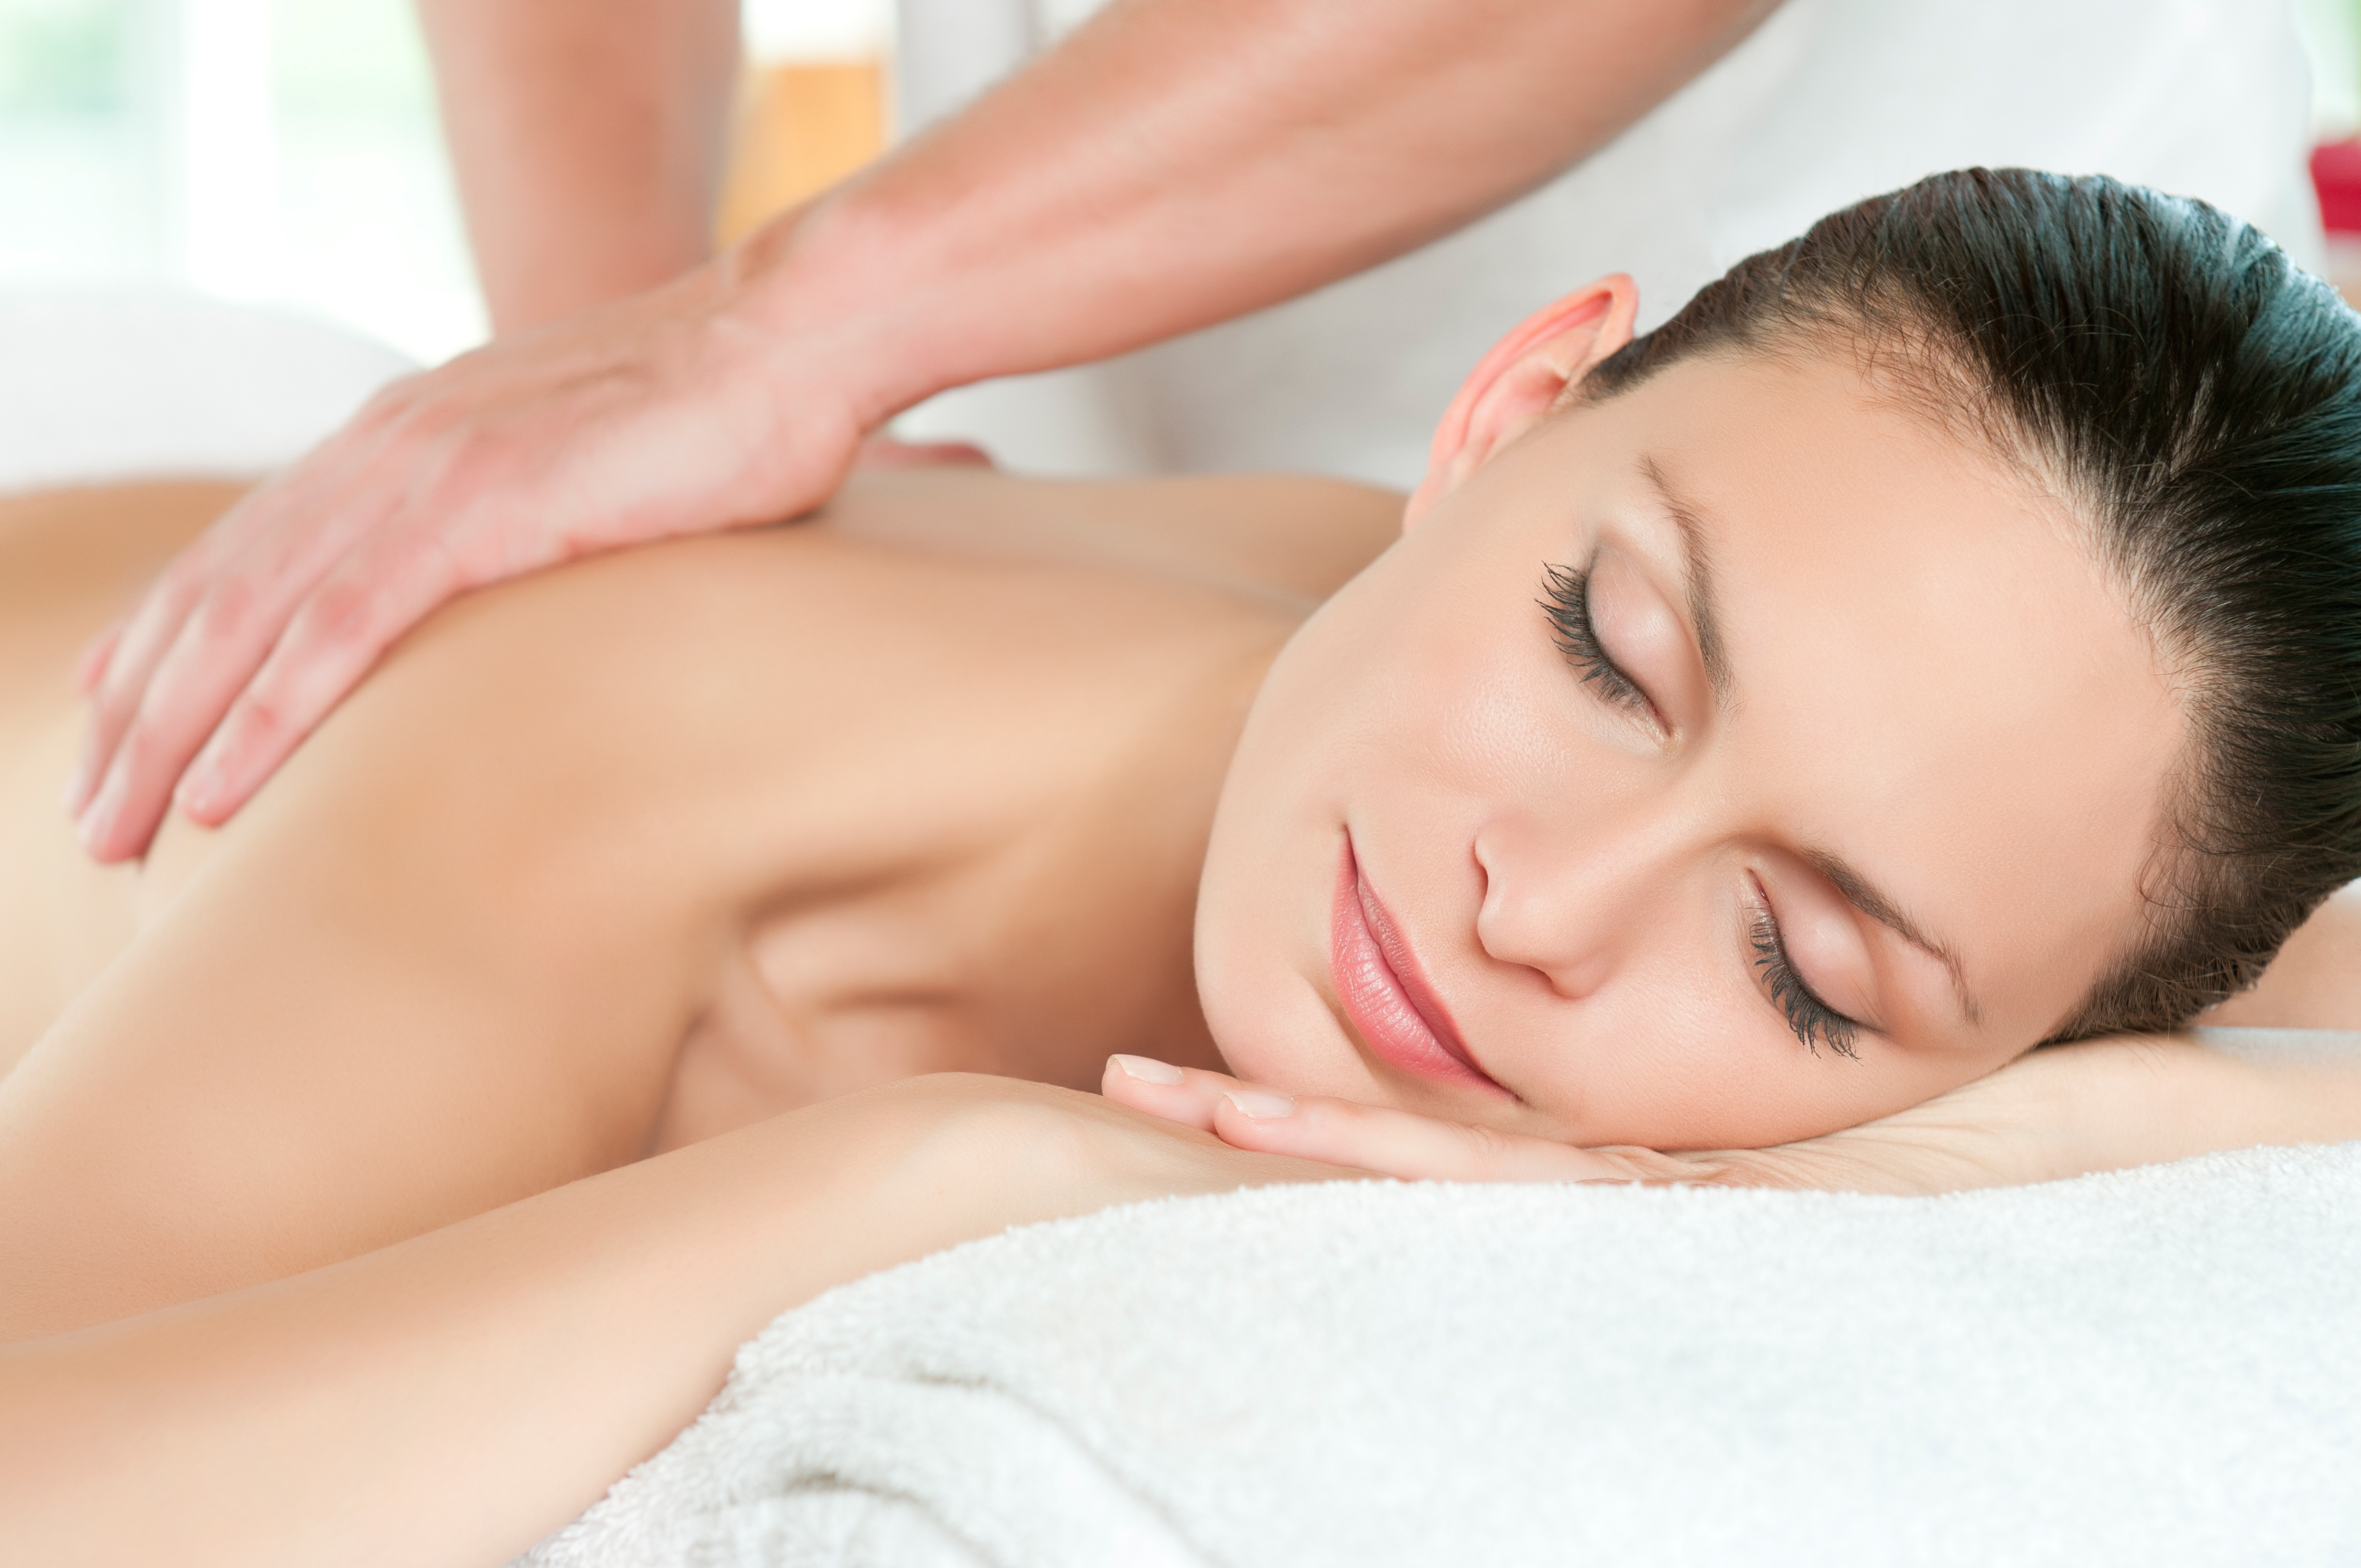 Relaxation Massage Course Le Spa Massage Academy